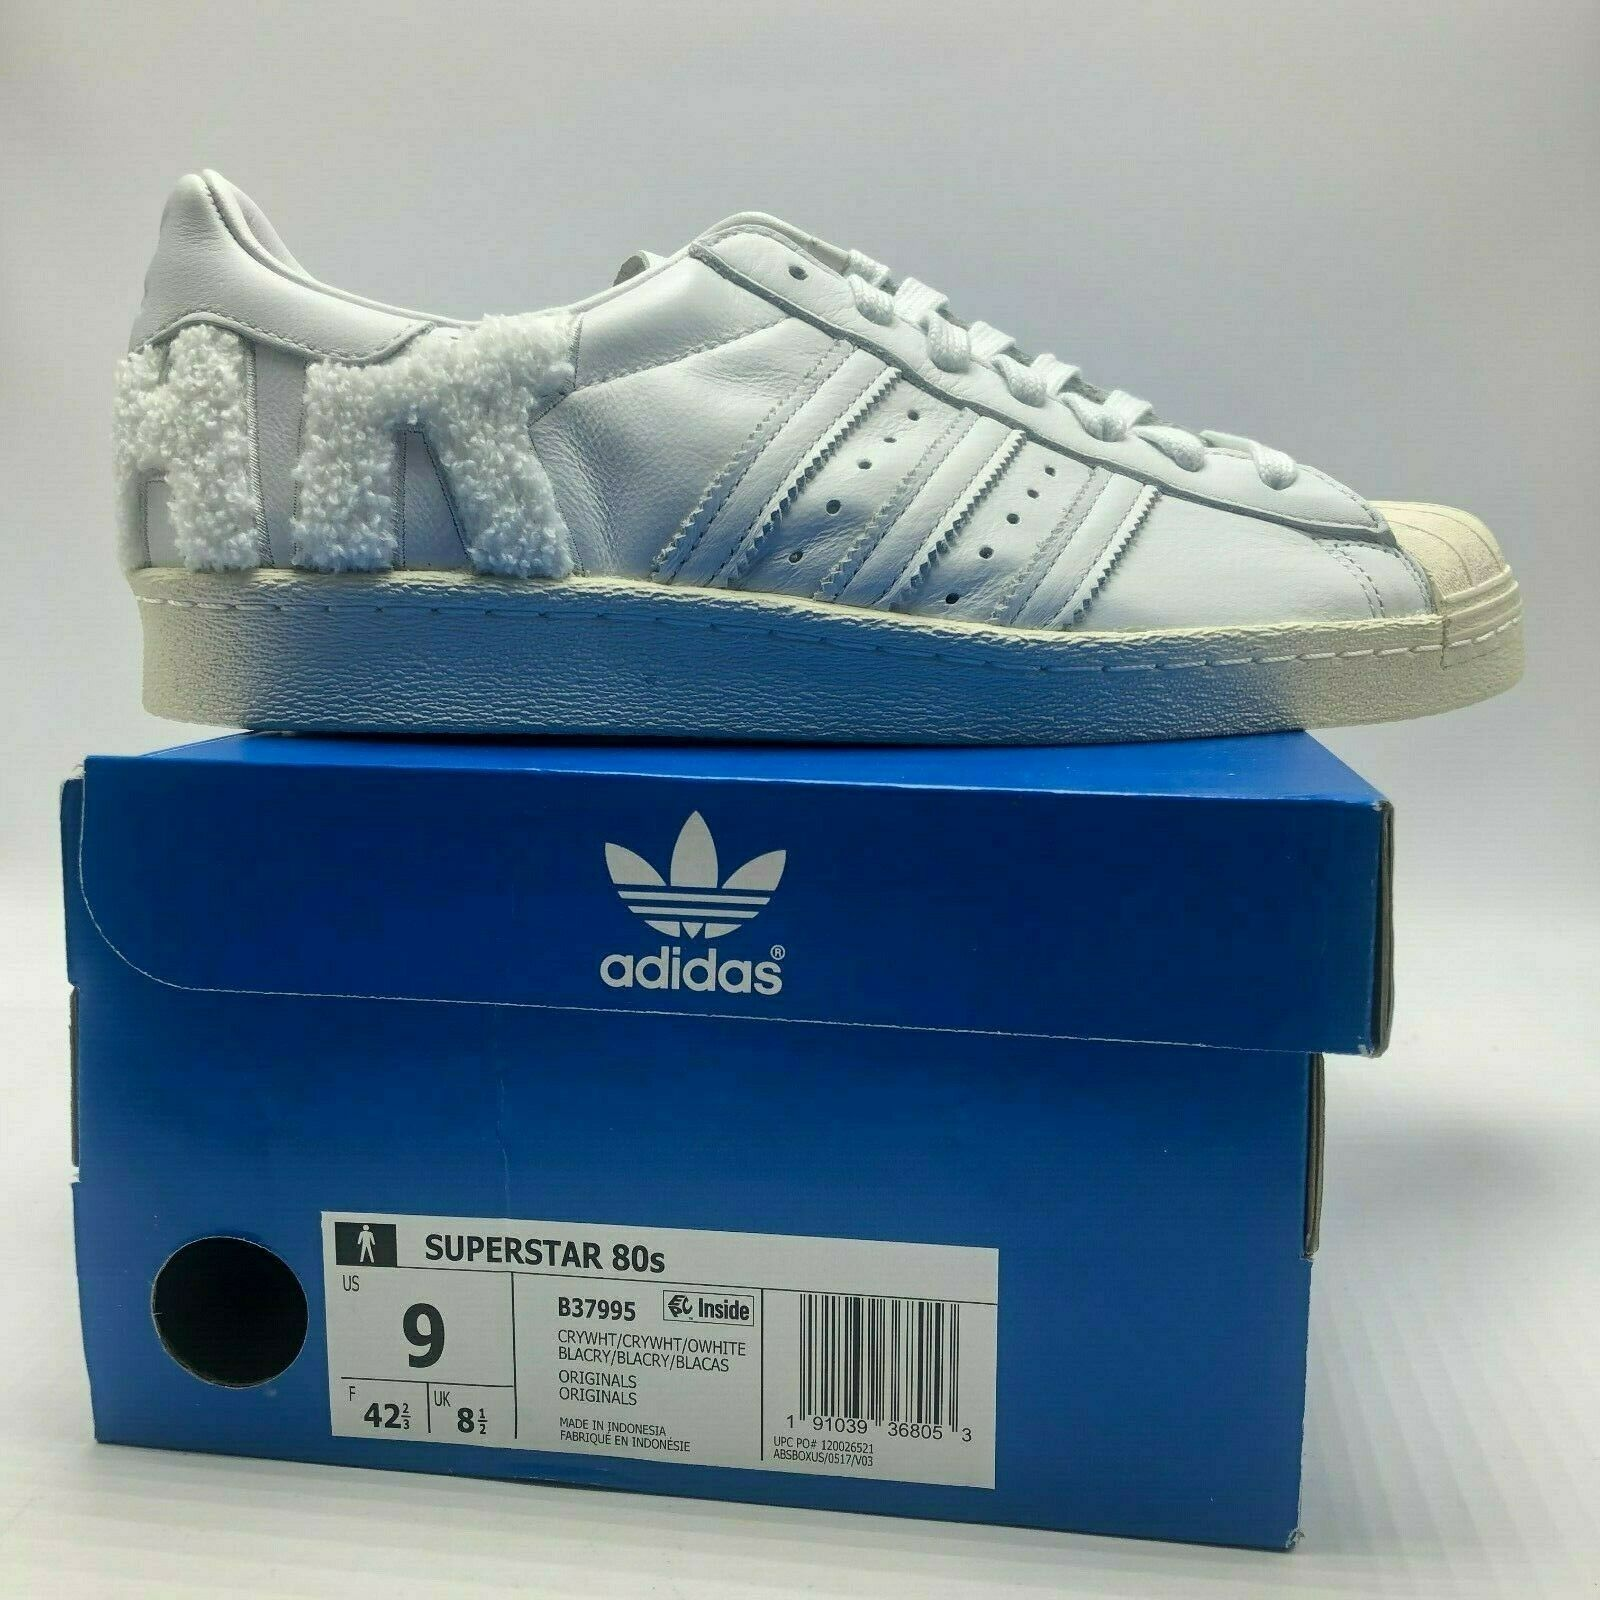 NEW MENS ADIDAS SUPERSTAR 80s WHITE (B37995), SZ 9 -12, 100% AUTHENTIC